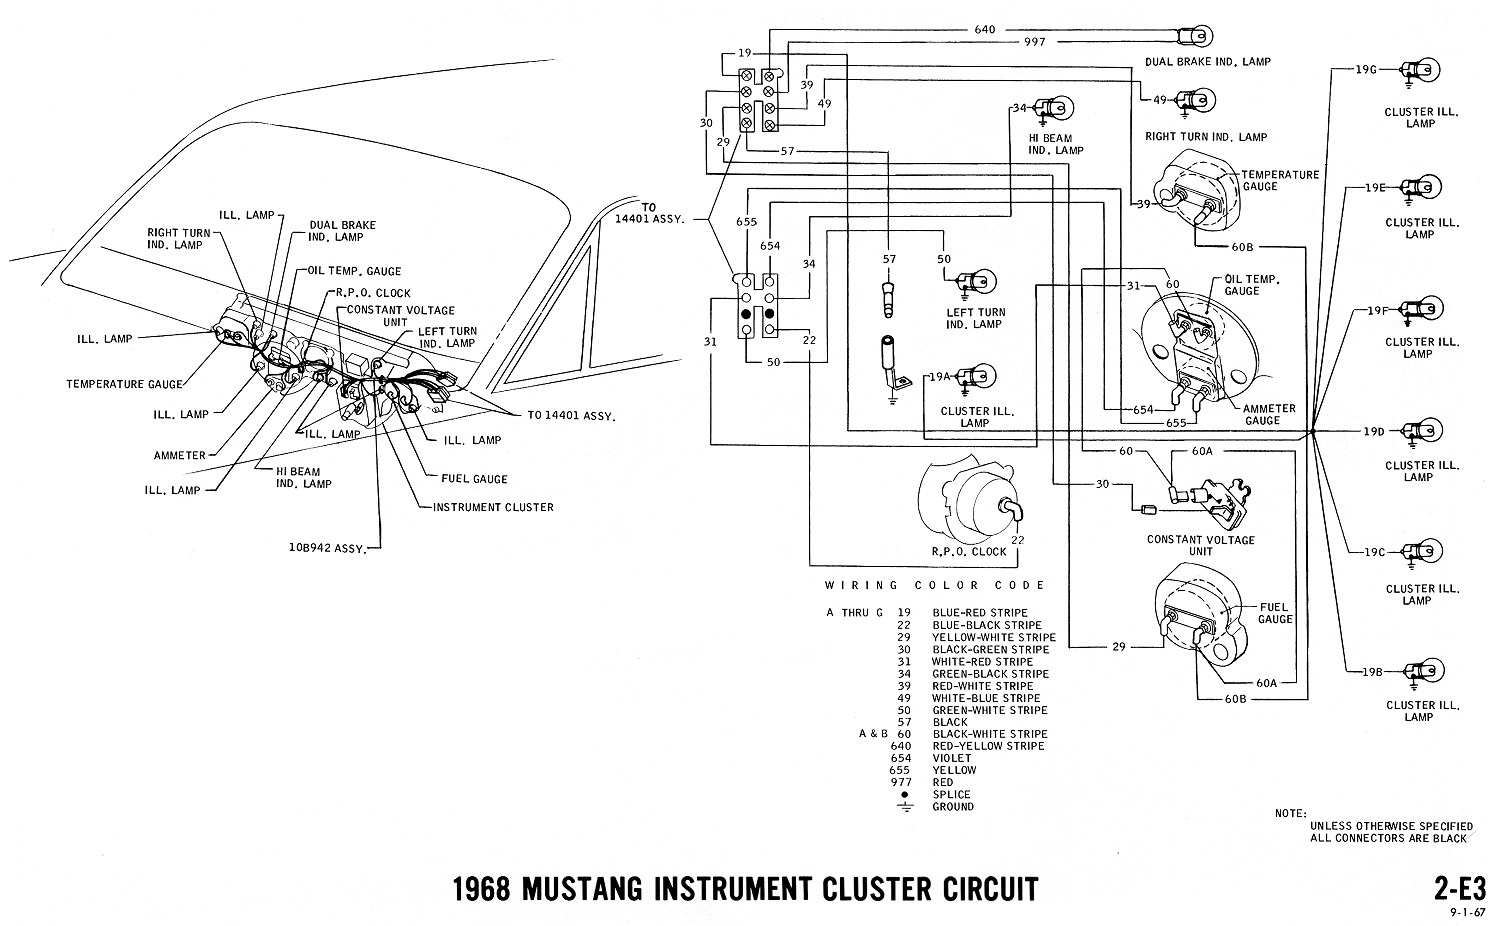 1968 mustang wiring diagram instruments 1968 mustang wiring diagrams and vacuum schematics average joe best wiring harness for 1967 mustang at soozxer.org